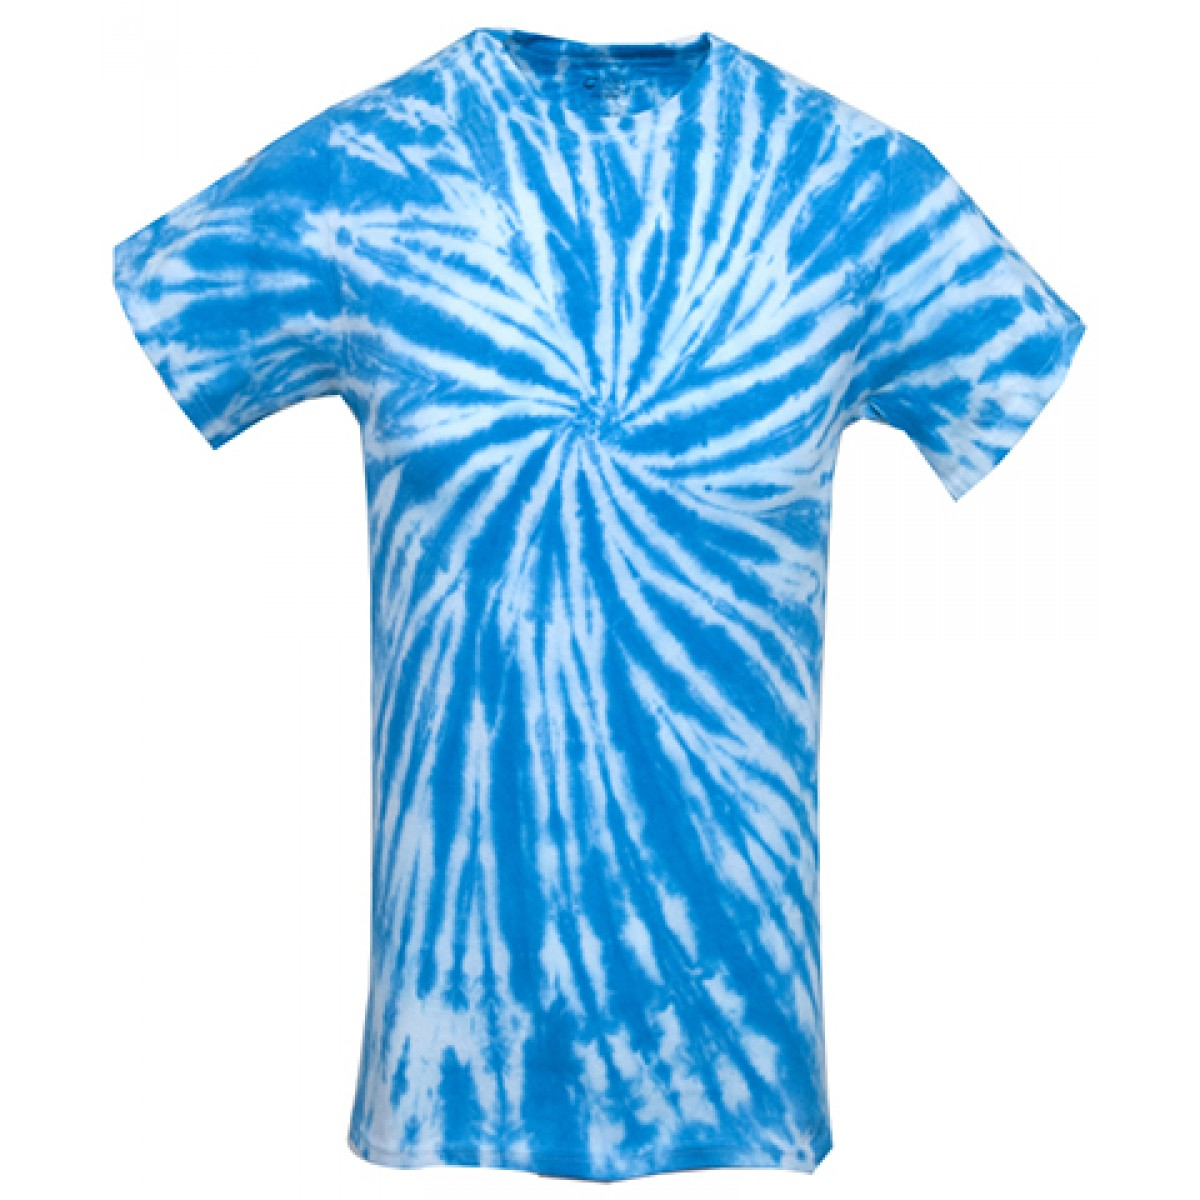 Tie-Dye Short Sleeve Shirts-White/Blue-YM